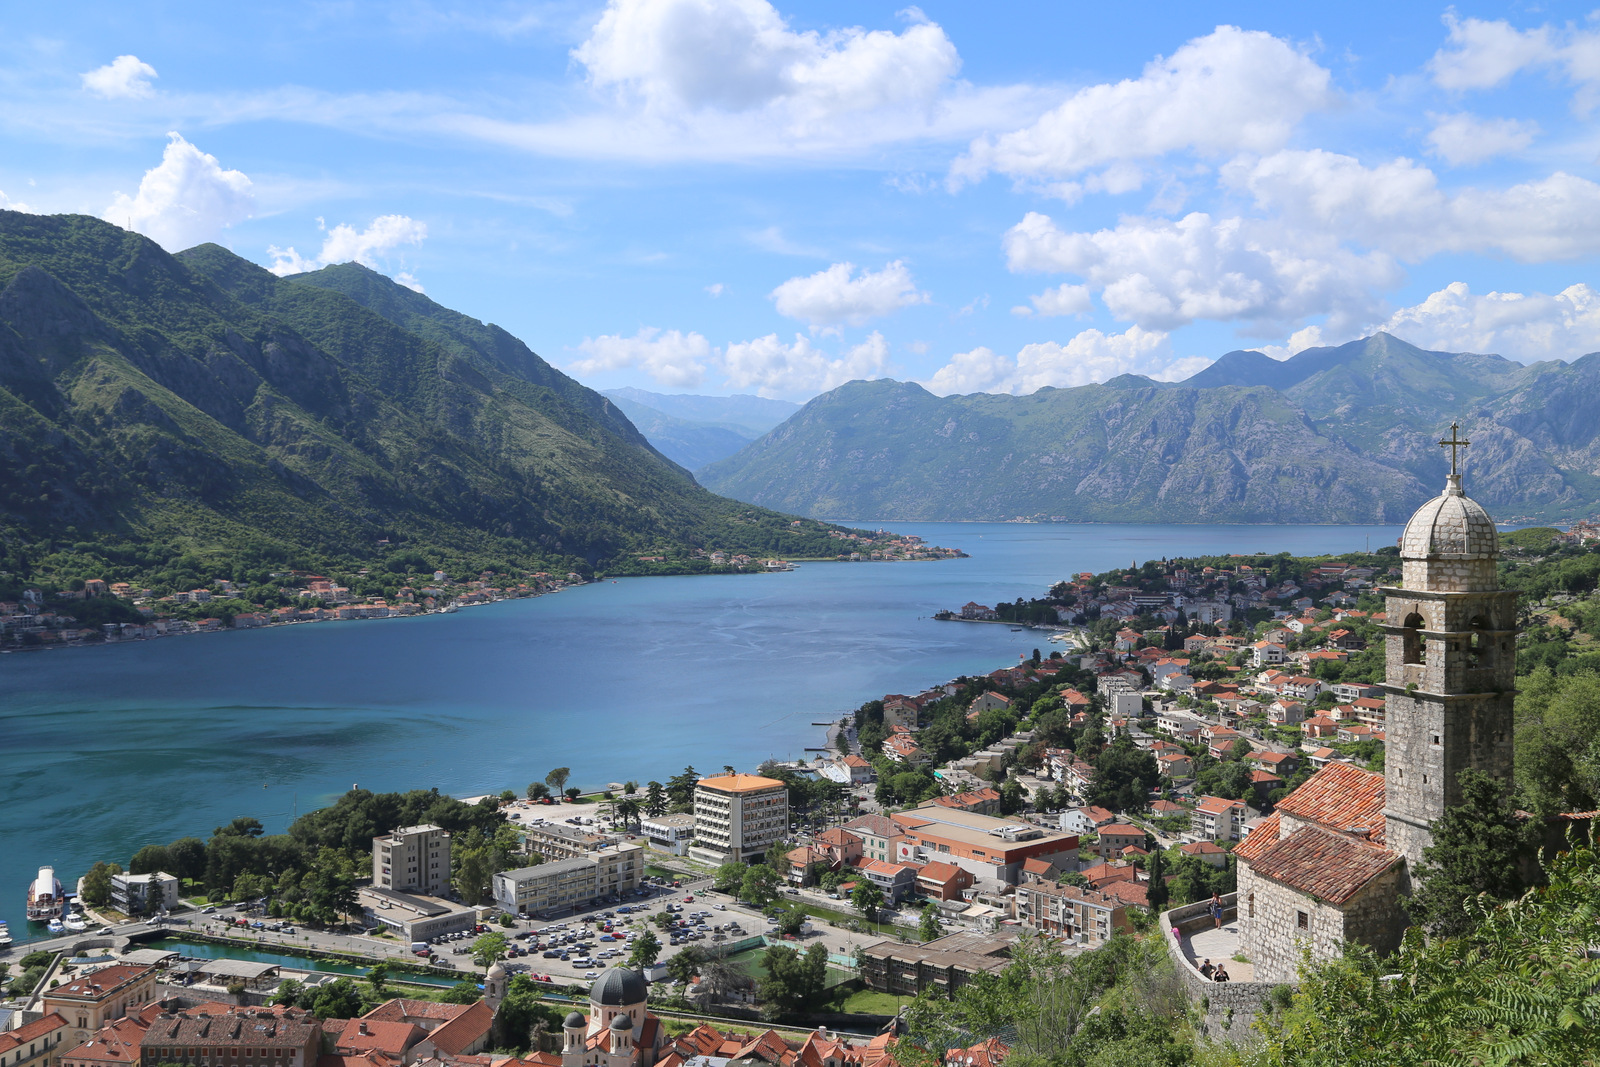 Kotor, the postcard view